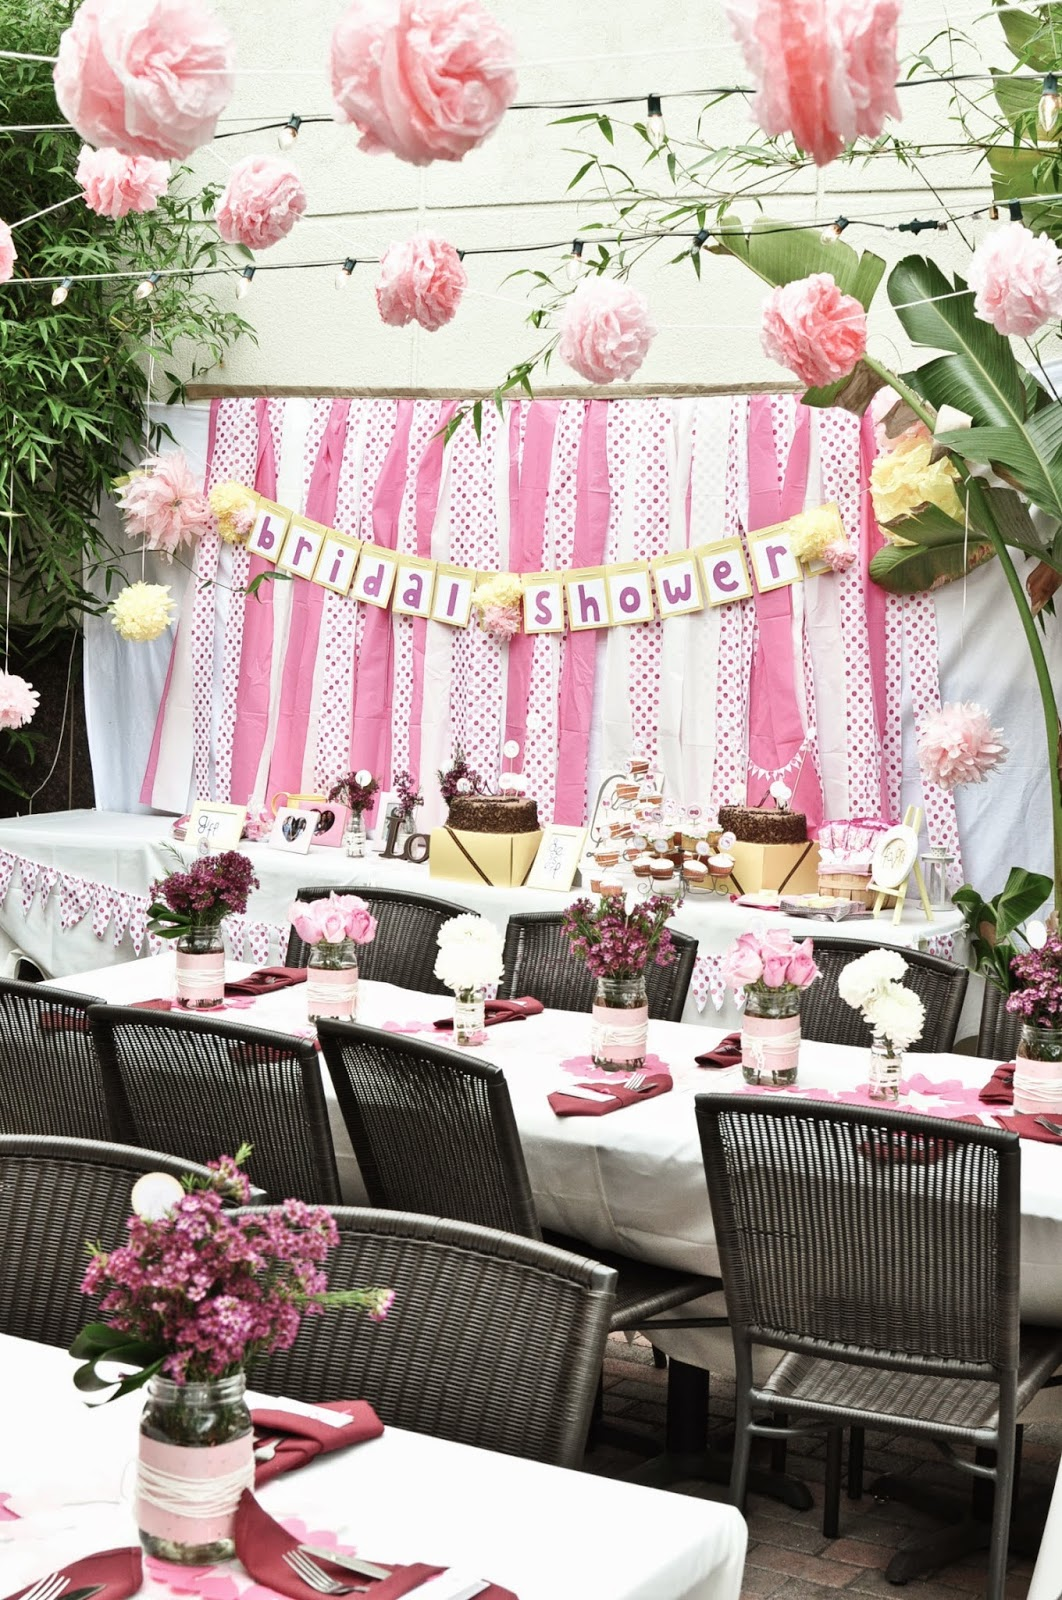 Amazing Outdoor Bridal Shower Ideas Part - 14: Photo Credit: Pixgood.com